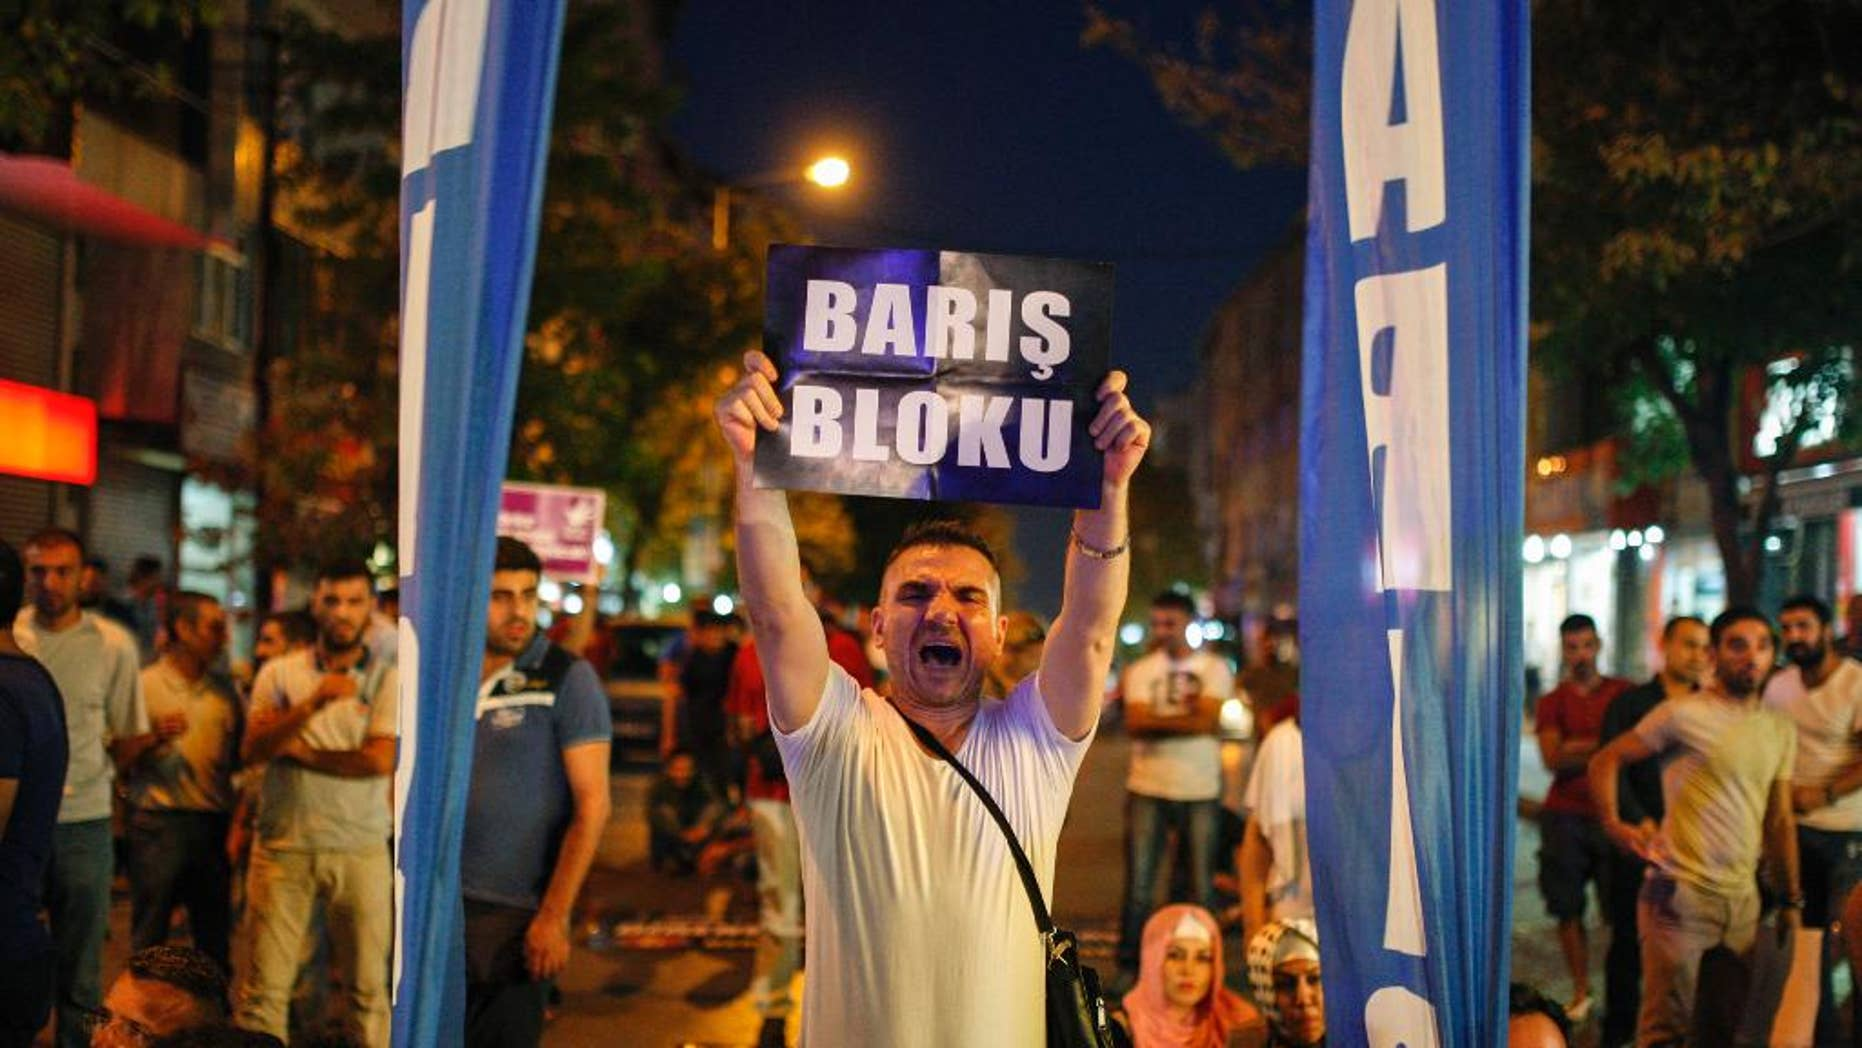 "A man protesting against Turkey's operations against Kurdish militants holds a sign that reads in Turkish: ""Peace Block"" , in Istanbul, Wednesday, Aug. 19, 2015. There has been a sharp escalation of violence between Turkey's security forces and the Kurdistan Workers' Party, or PKK, along with the collapse of a two-year peace process with the rebels. Dozens of people, mostly Turkish soldiers, have died since July in the renewed violence. (AP Photo/Cagdas Erdogan) TURKEY OUT"